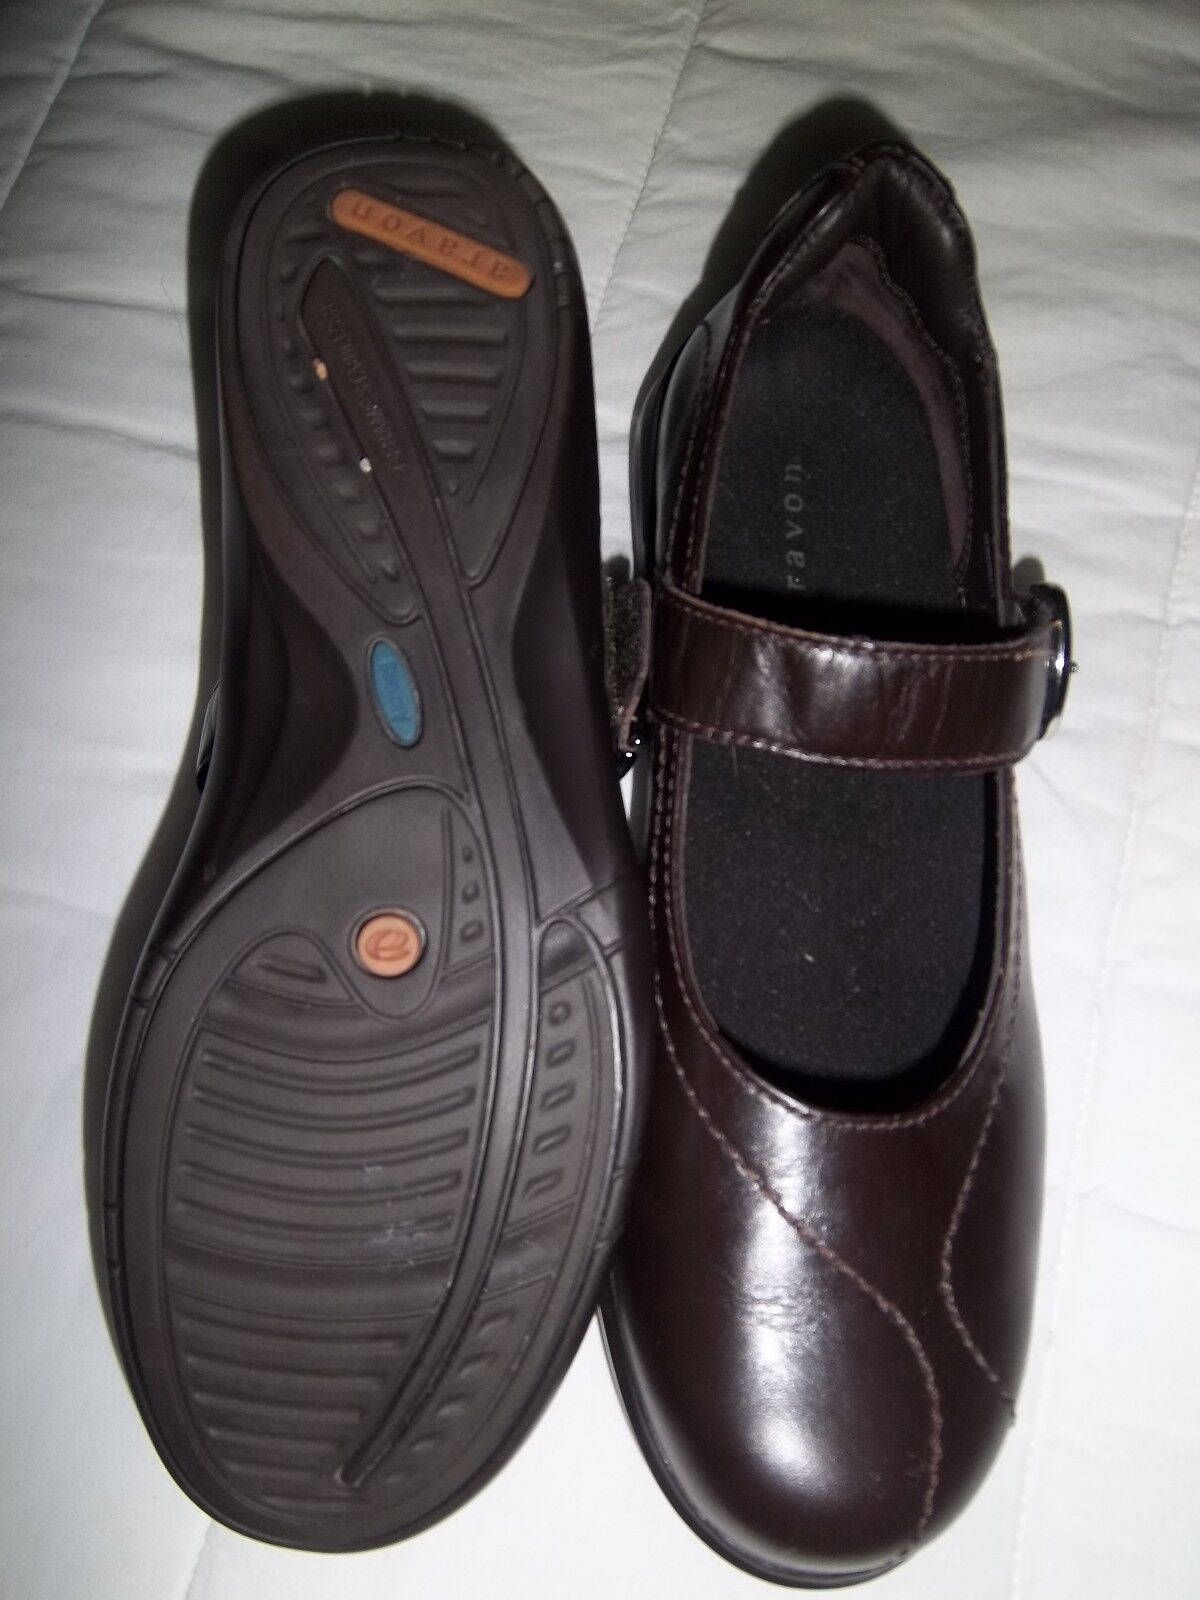 Ladies Brown Combination Last Aravon Mary Jane shoes shoes shoes Size 7.5 201247